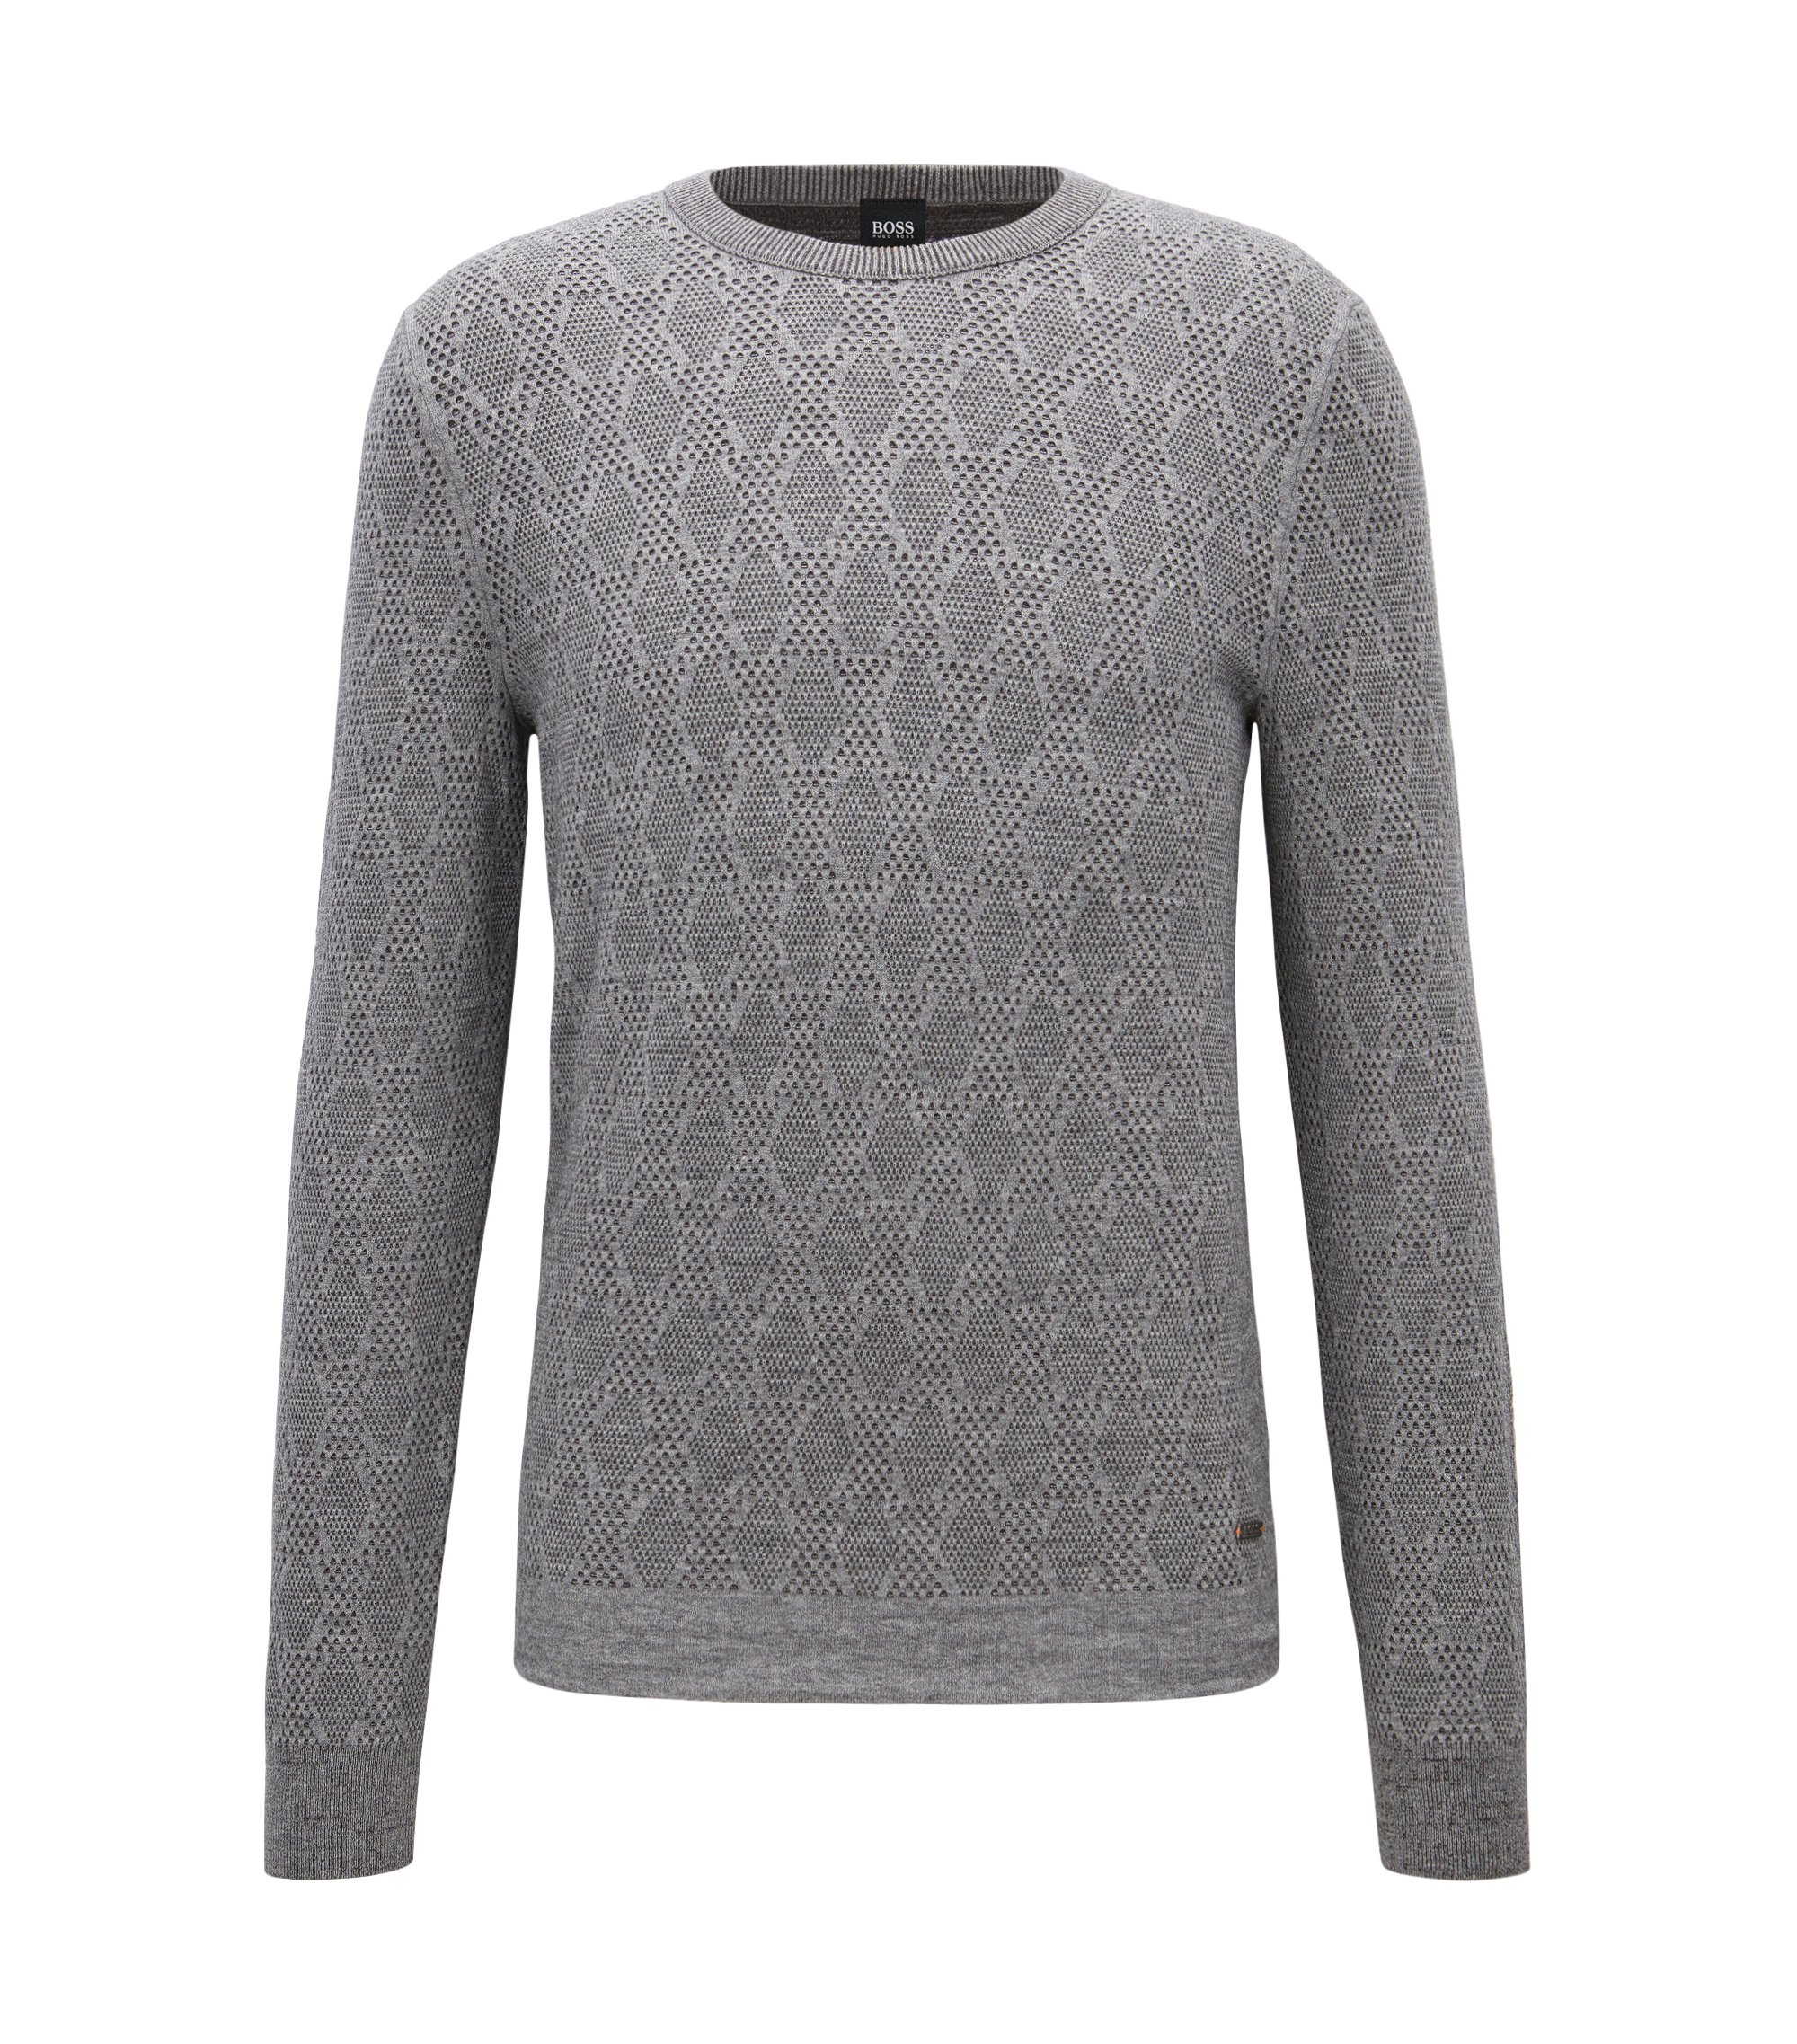 Two-tone structured sweater in a cotton blend, Grey